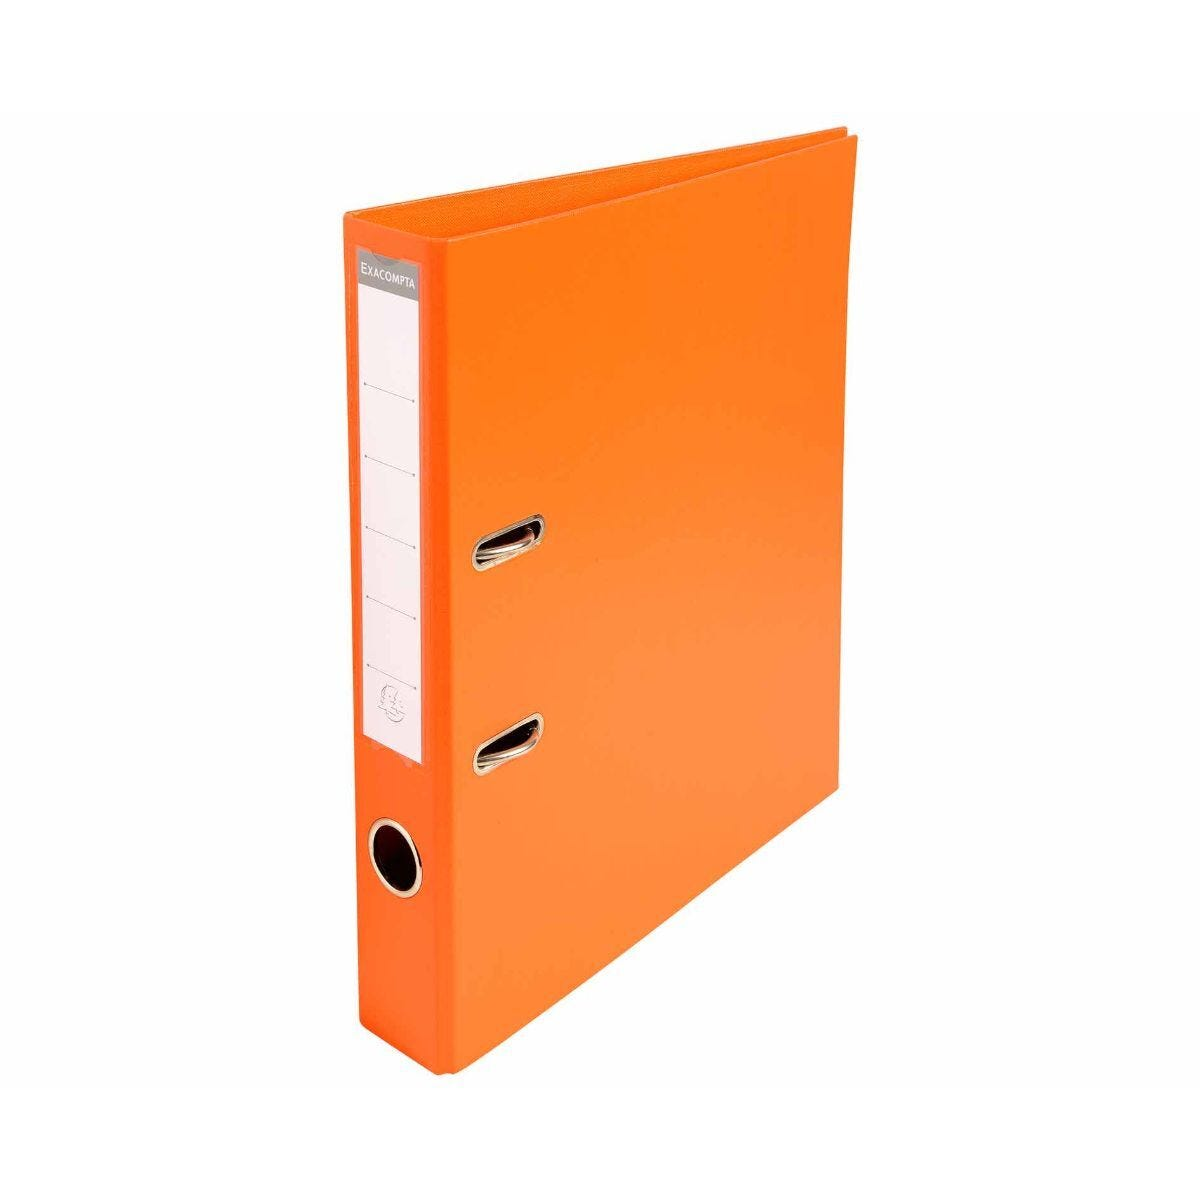 Exacompta PremTouch A4 Lever Arch File 50mm Pack of 10 Orange